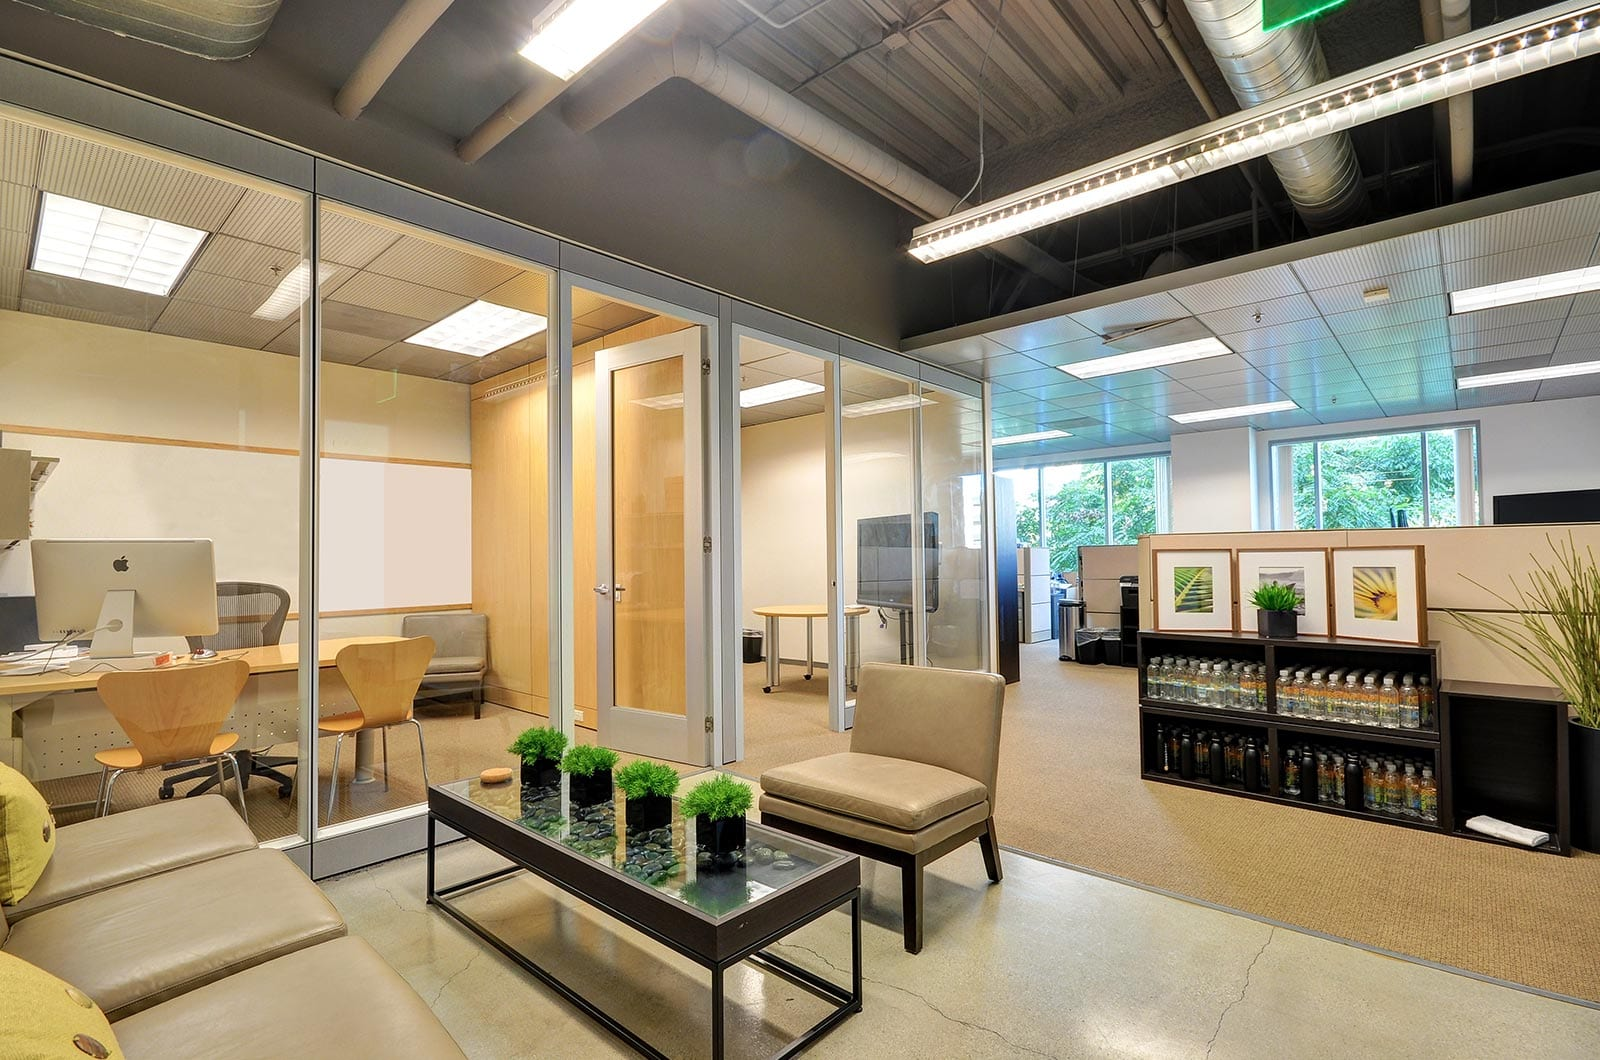 Modern-Office-Space-Commercial-Real-Estate-Virtual-Tour-Office-Building-Virtual-Tours